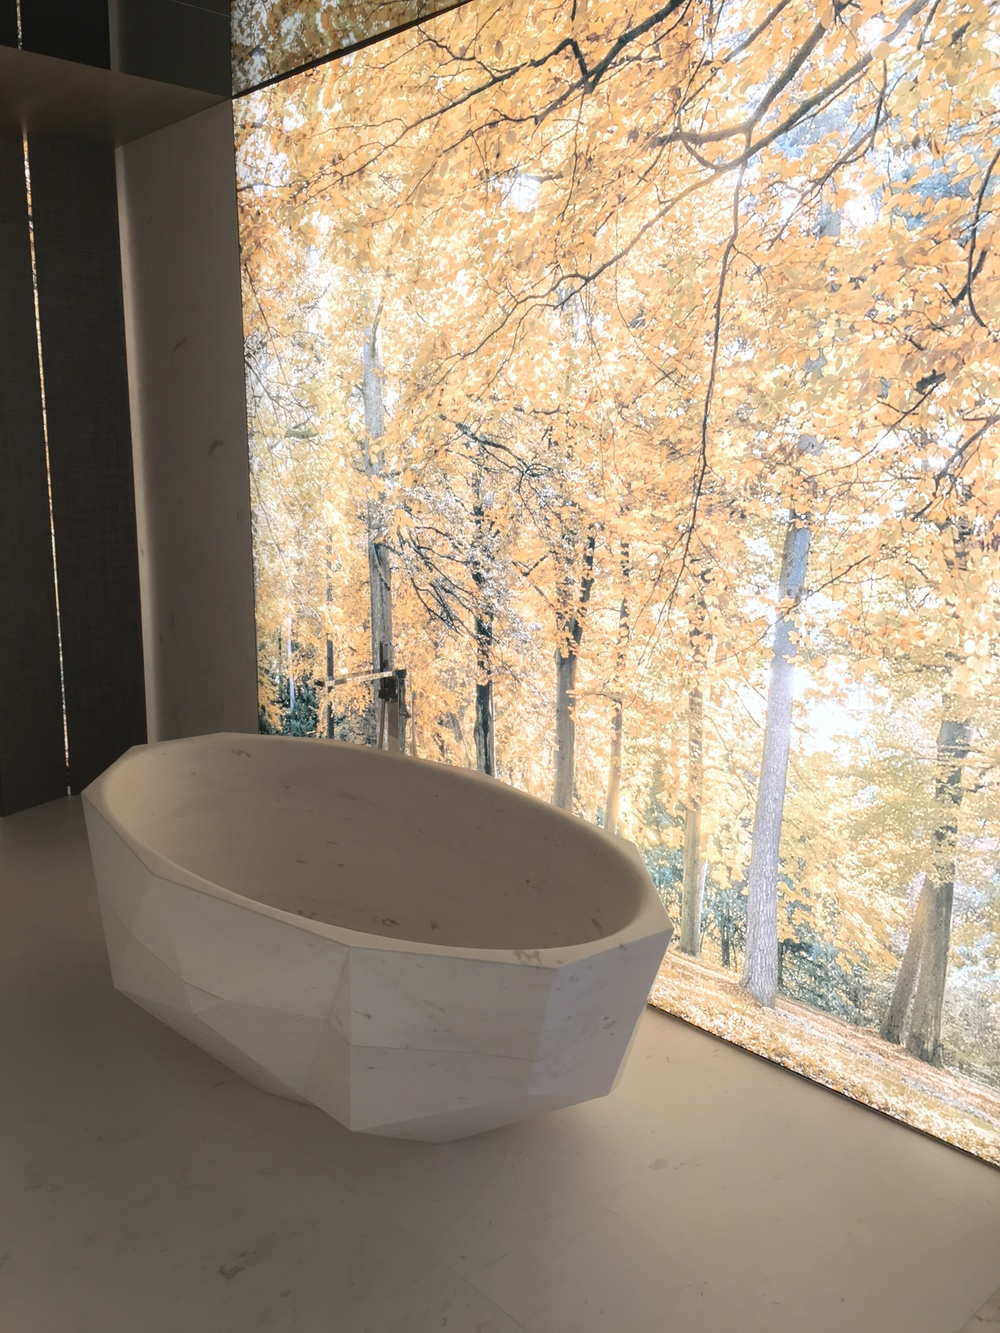 Lifestyle setting- check out the bath